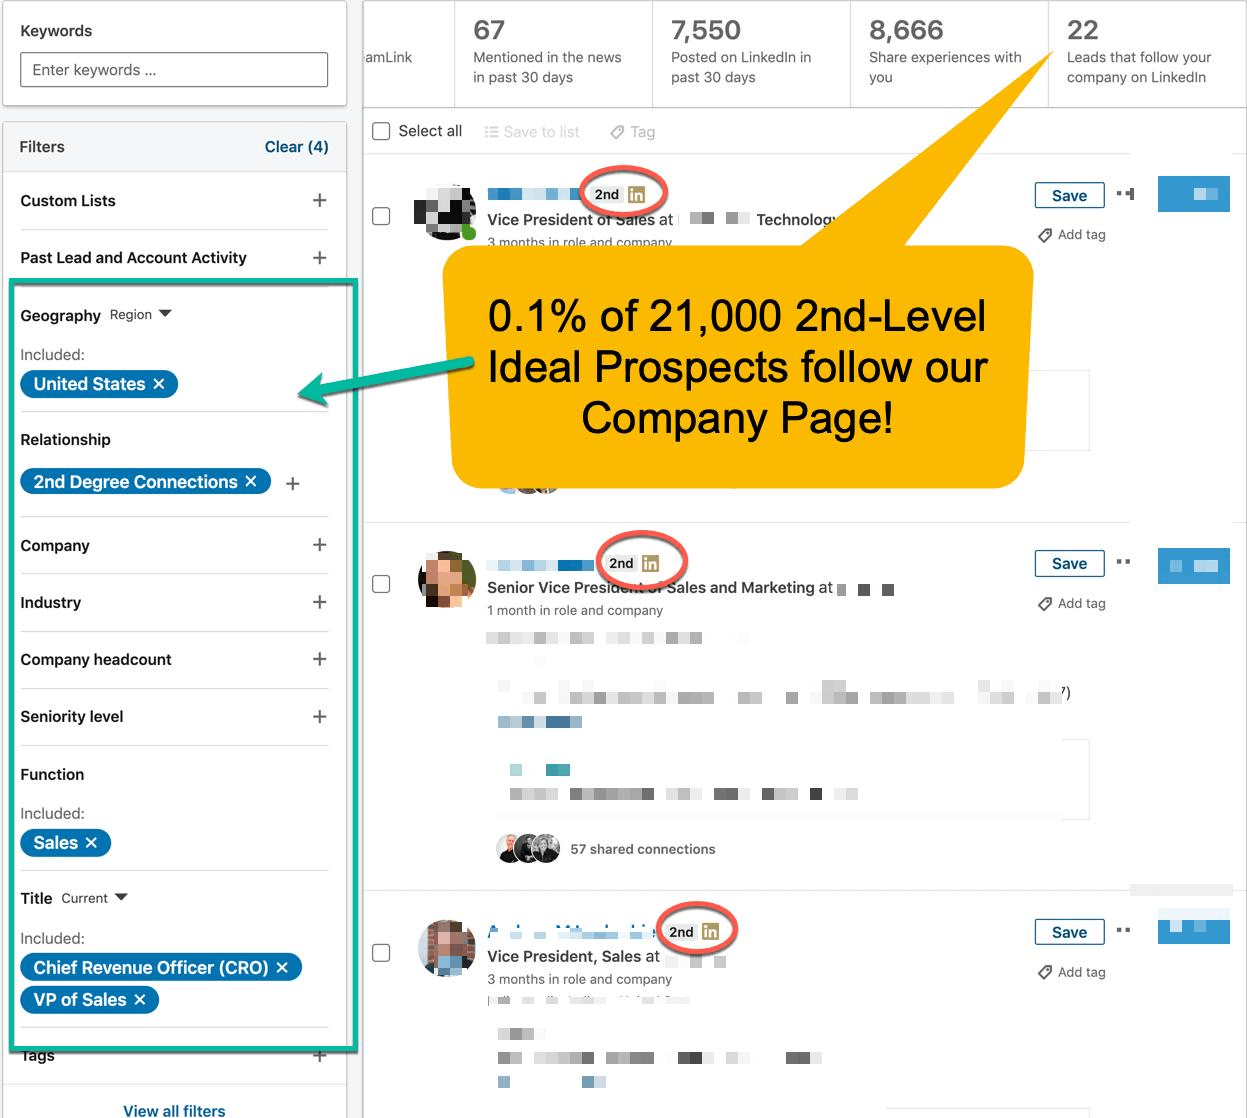 Tips on how to use LinkedIn Sales Navigator to find warm leads